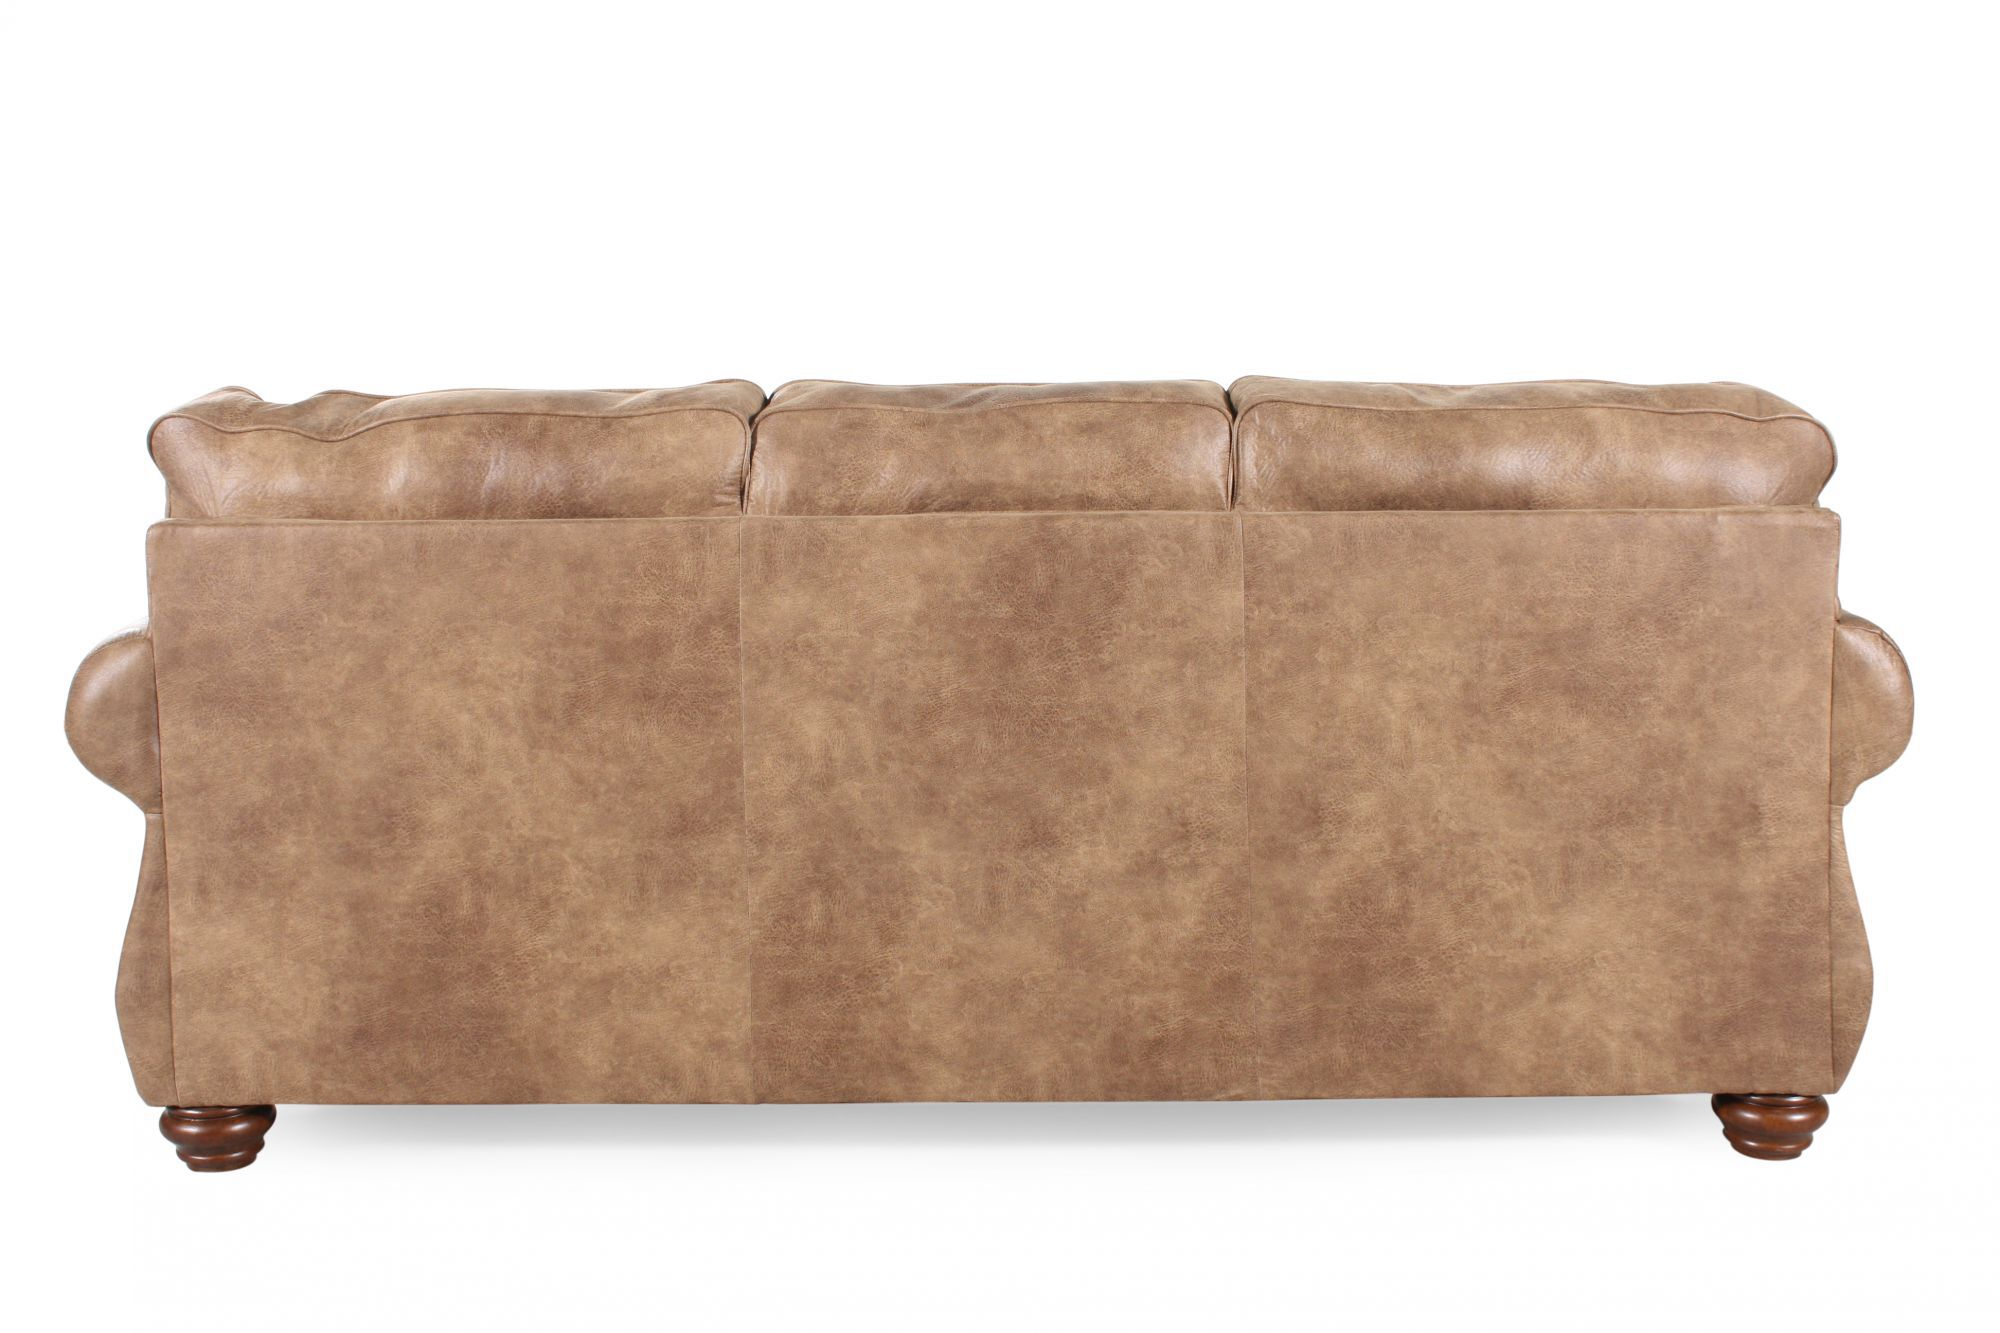 southwestern sofas grey leather modern sectional sofa traditional rolled arm 89 quot in earth tone